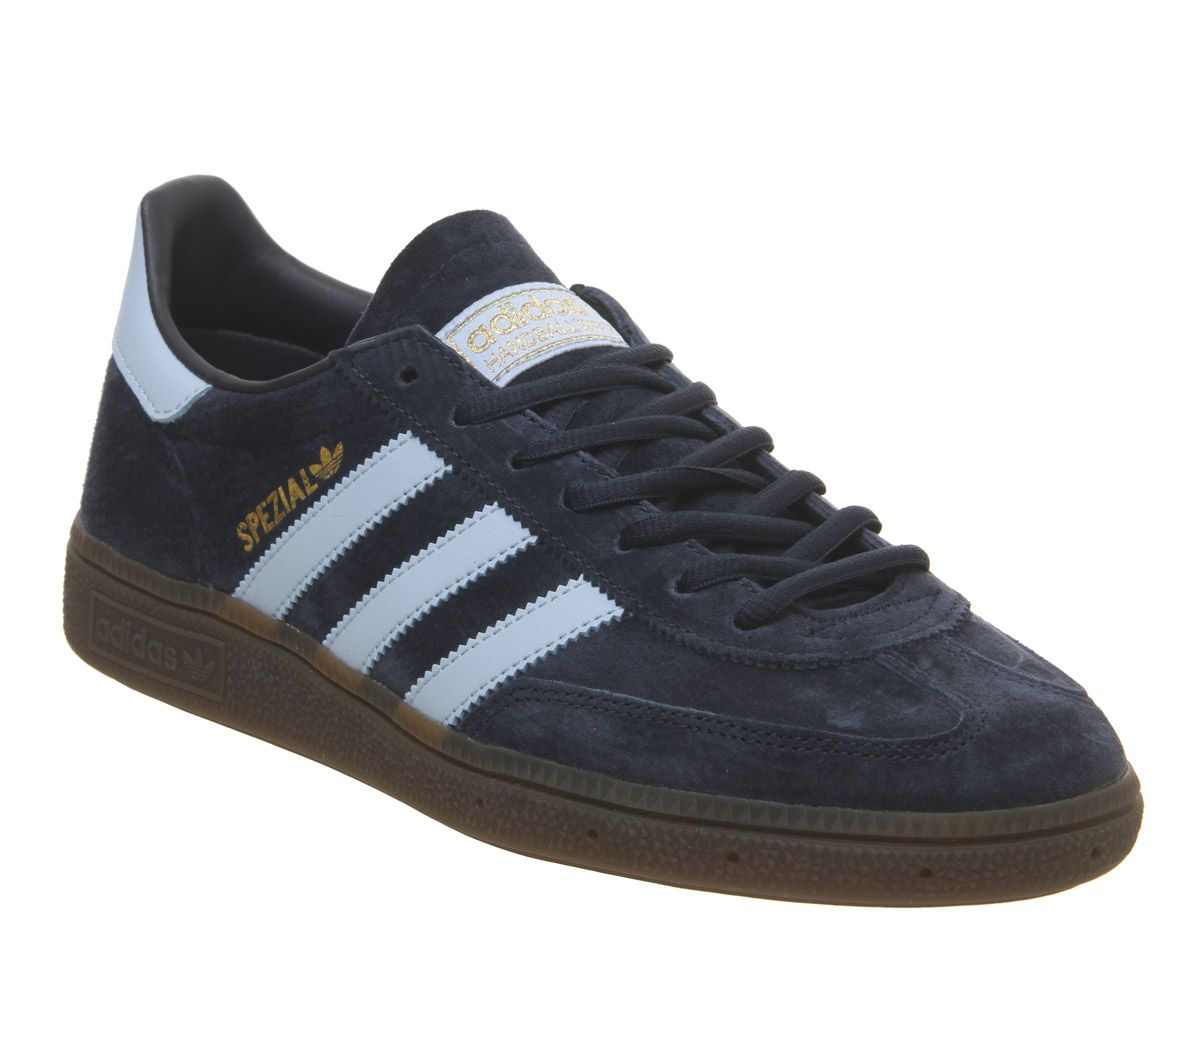 quality design a188c a9893 Sentinel Adidas Handball Spezial Trainers Collegiate Navy Clear Sky Gum  Trainers Shoes